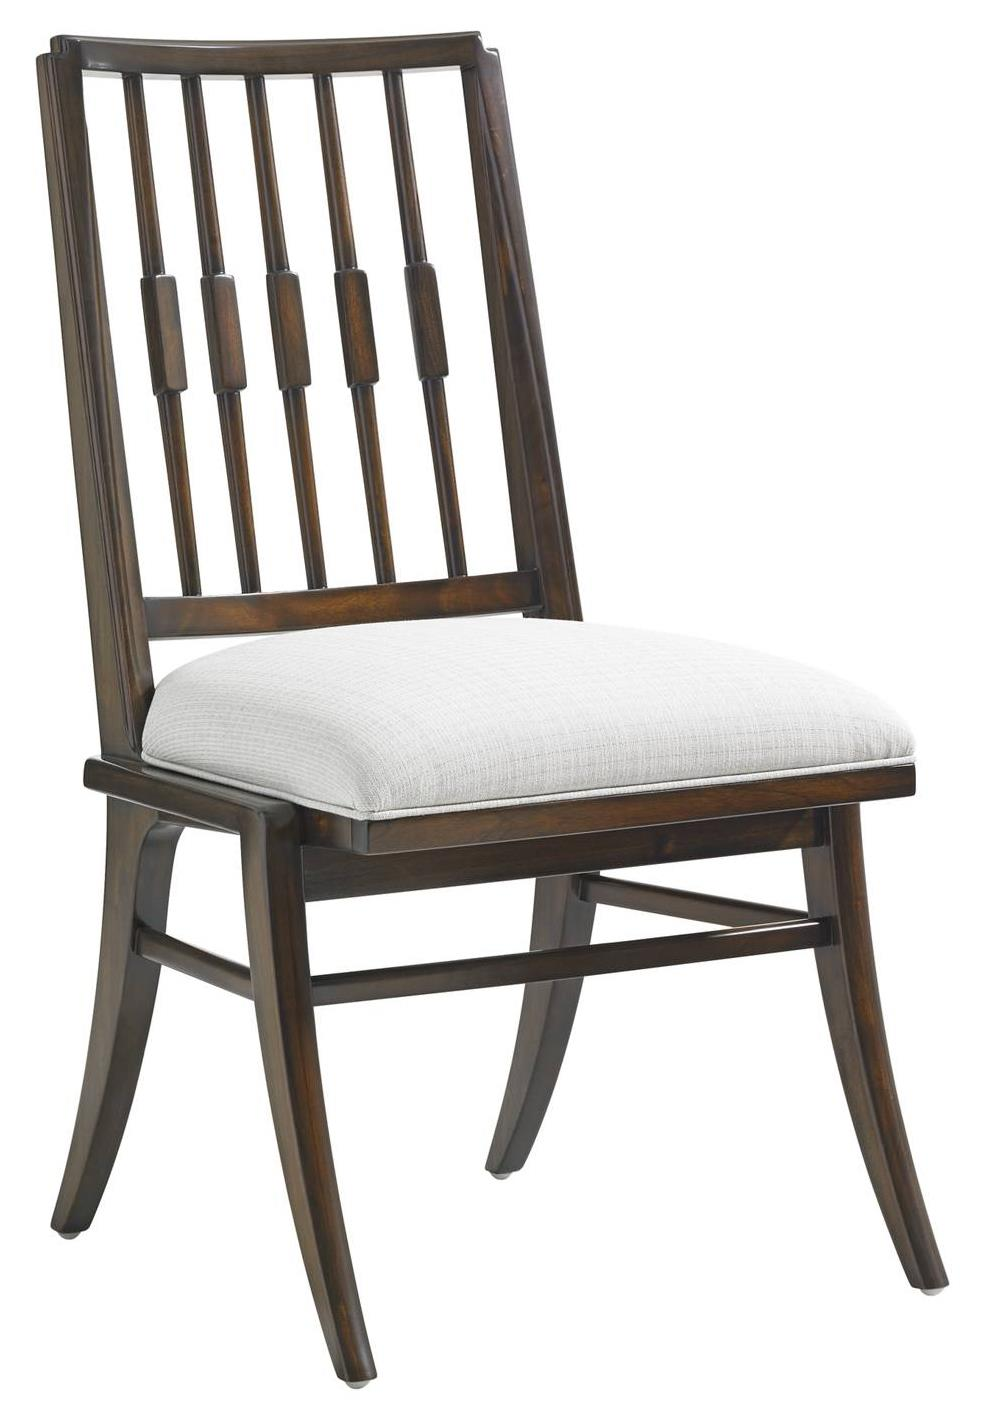 Stanley Furniture Crestaire Savoy Side Chair - Item Number: 436-11-60